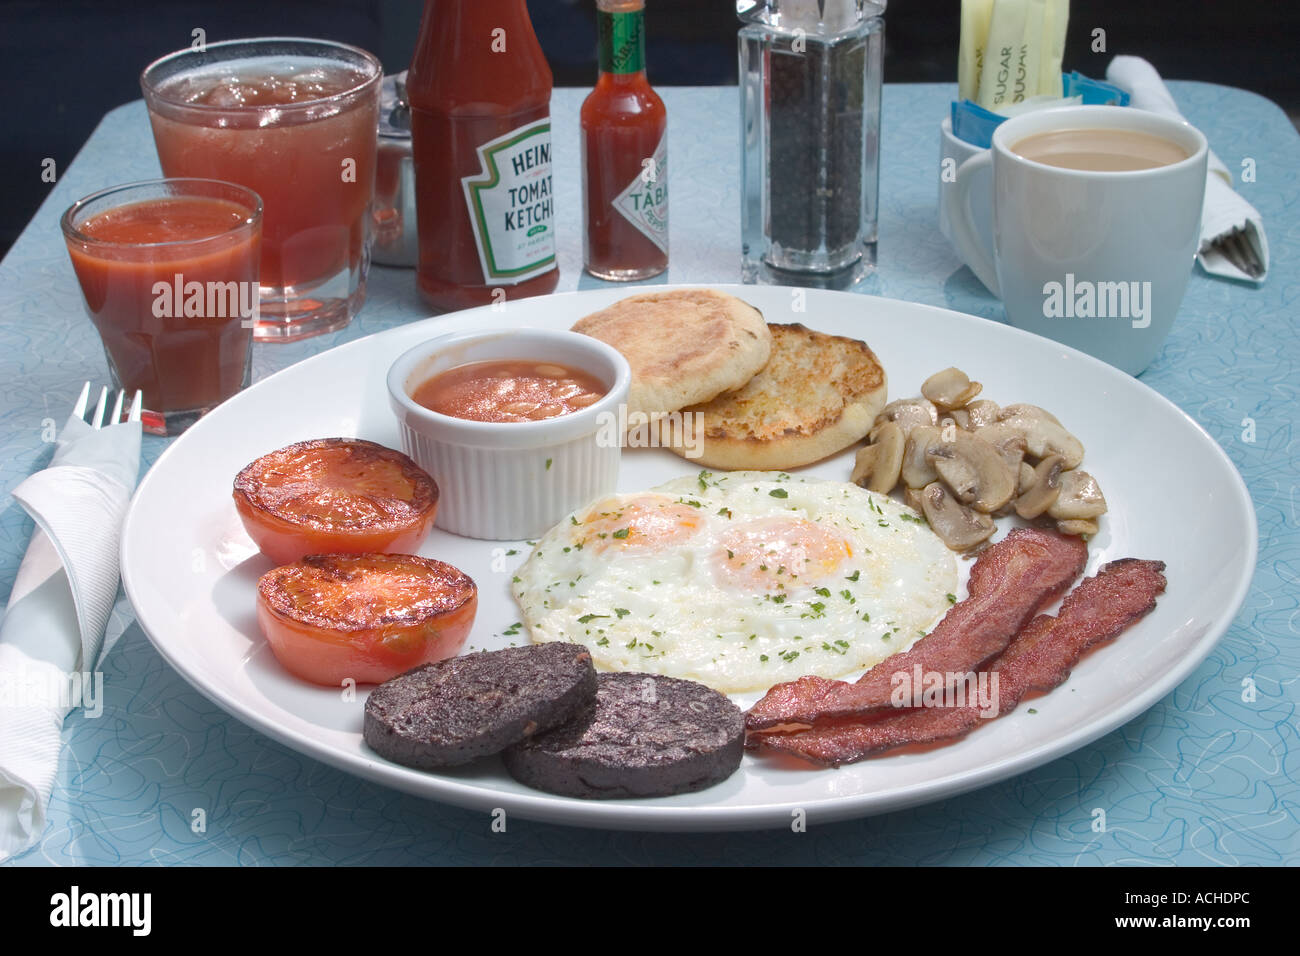 Bacon Fried Eggs black pudding grilled tomato mushrooms baked beans full english breakfast coffee juice table setting & Bacon Fried Eggs black pudding grilled tomato mushrooms baked beans ...